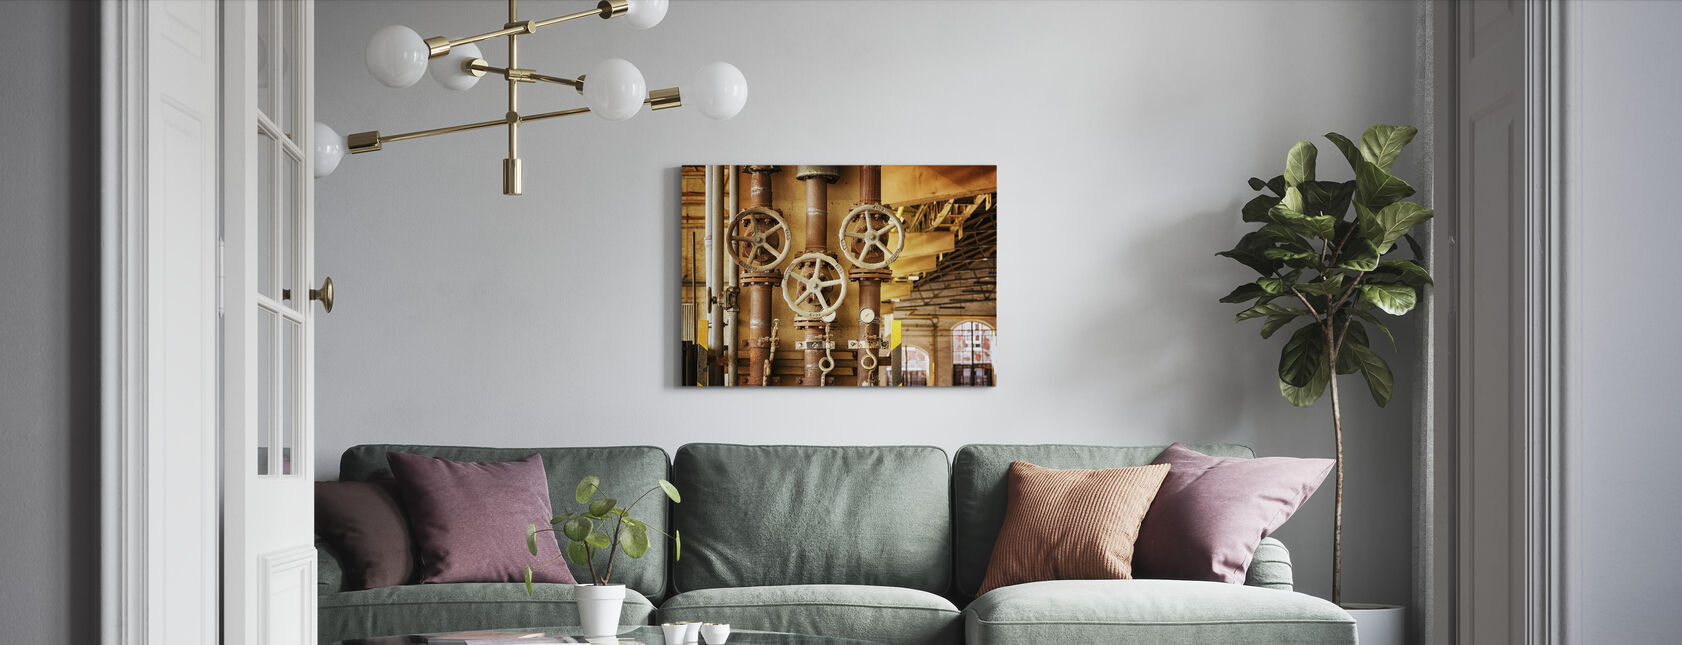 Pipes and Valves - Canvas print - Living Room